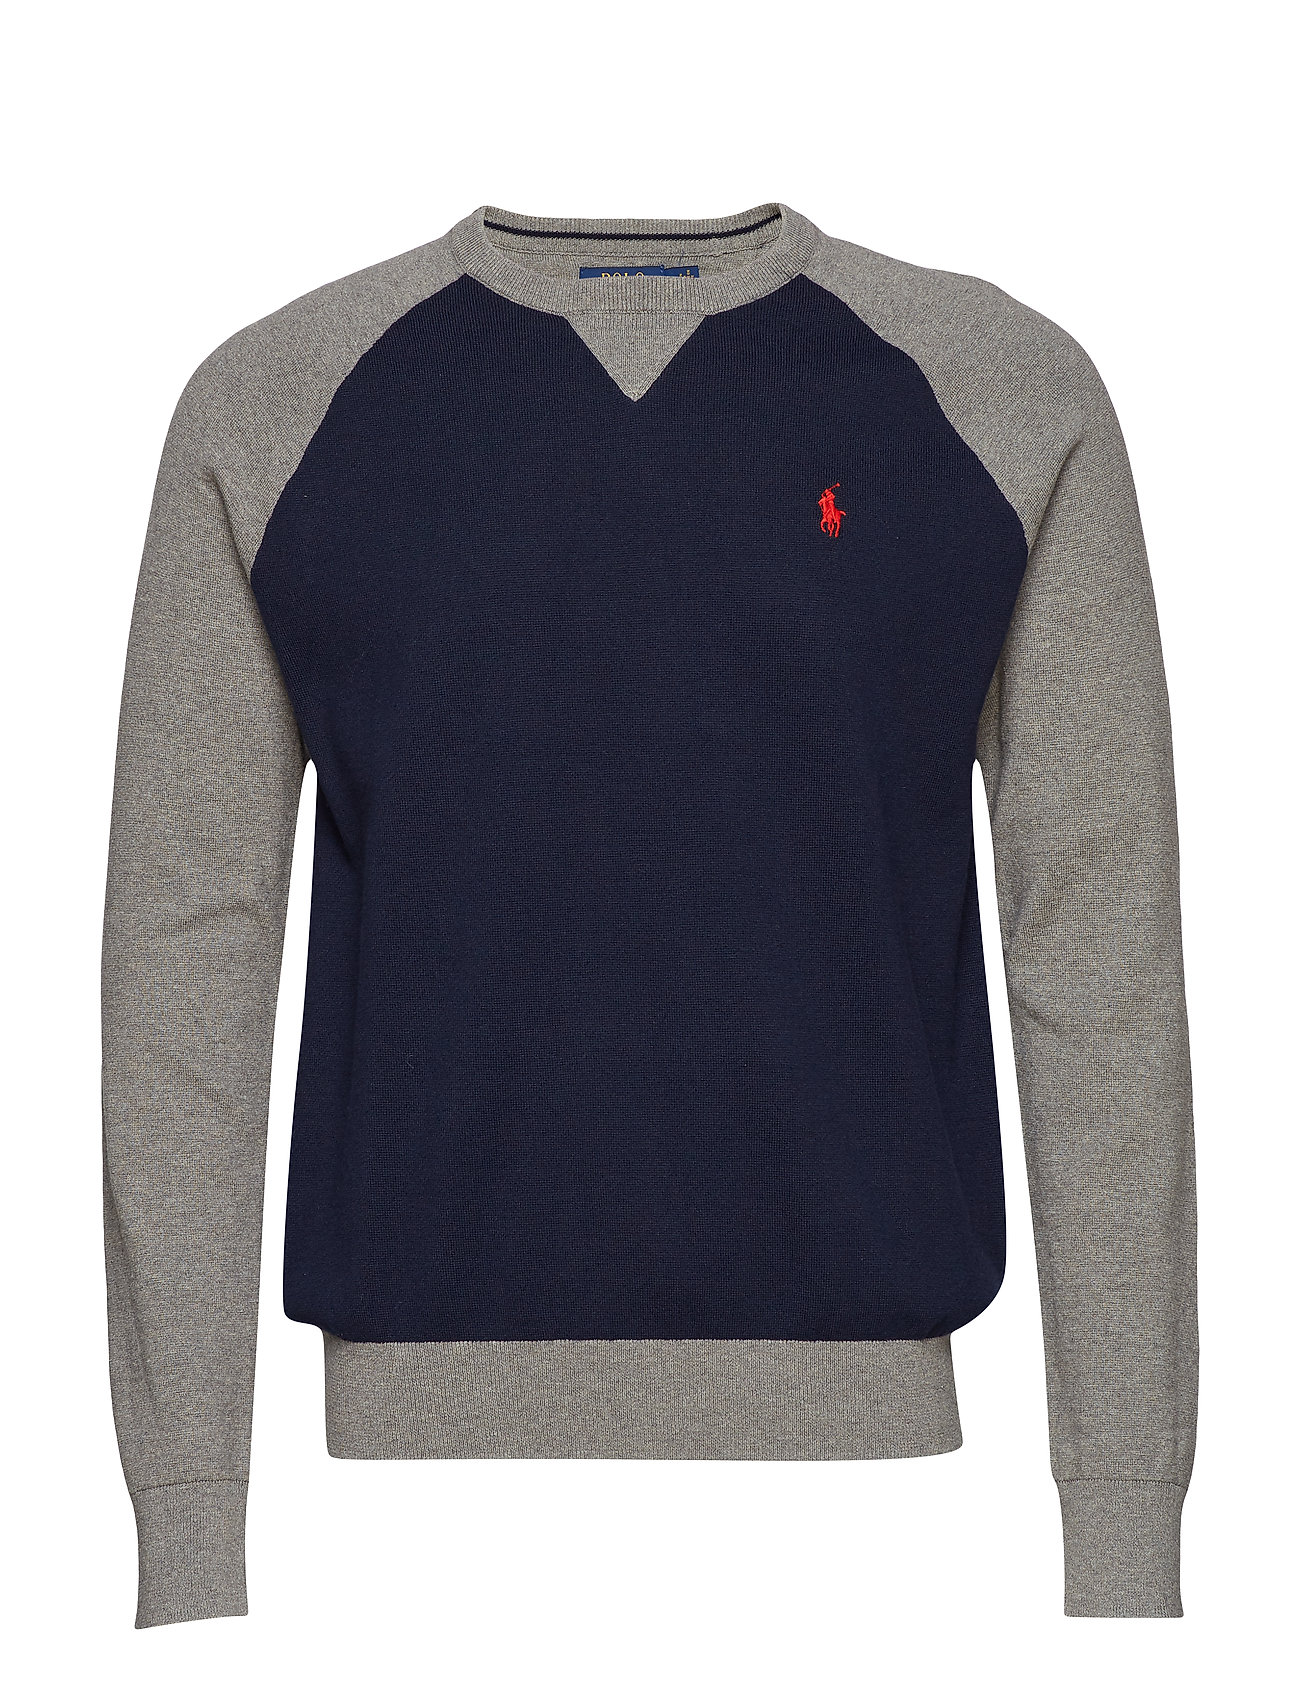 grey MultiPolo Ralph Color Cotton Lauren Sweaternavy blocked I7bgvy6Yf